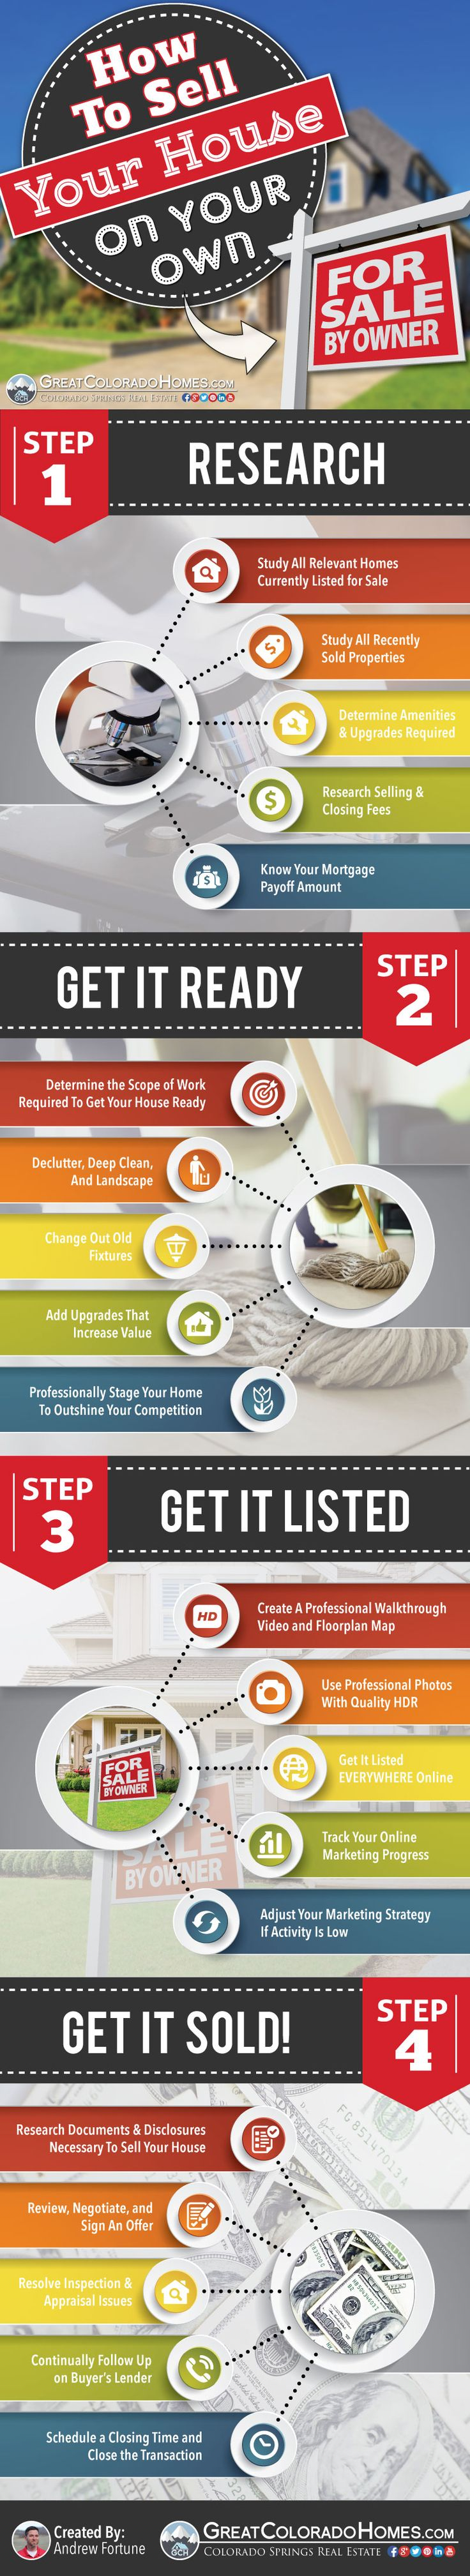 Simple Step By Infographic And Full Article To Help You Through The For Sale Owner FSBO Process